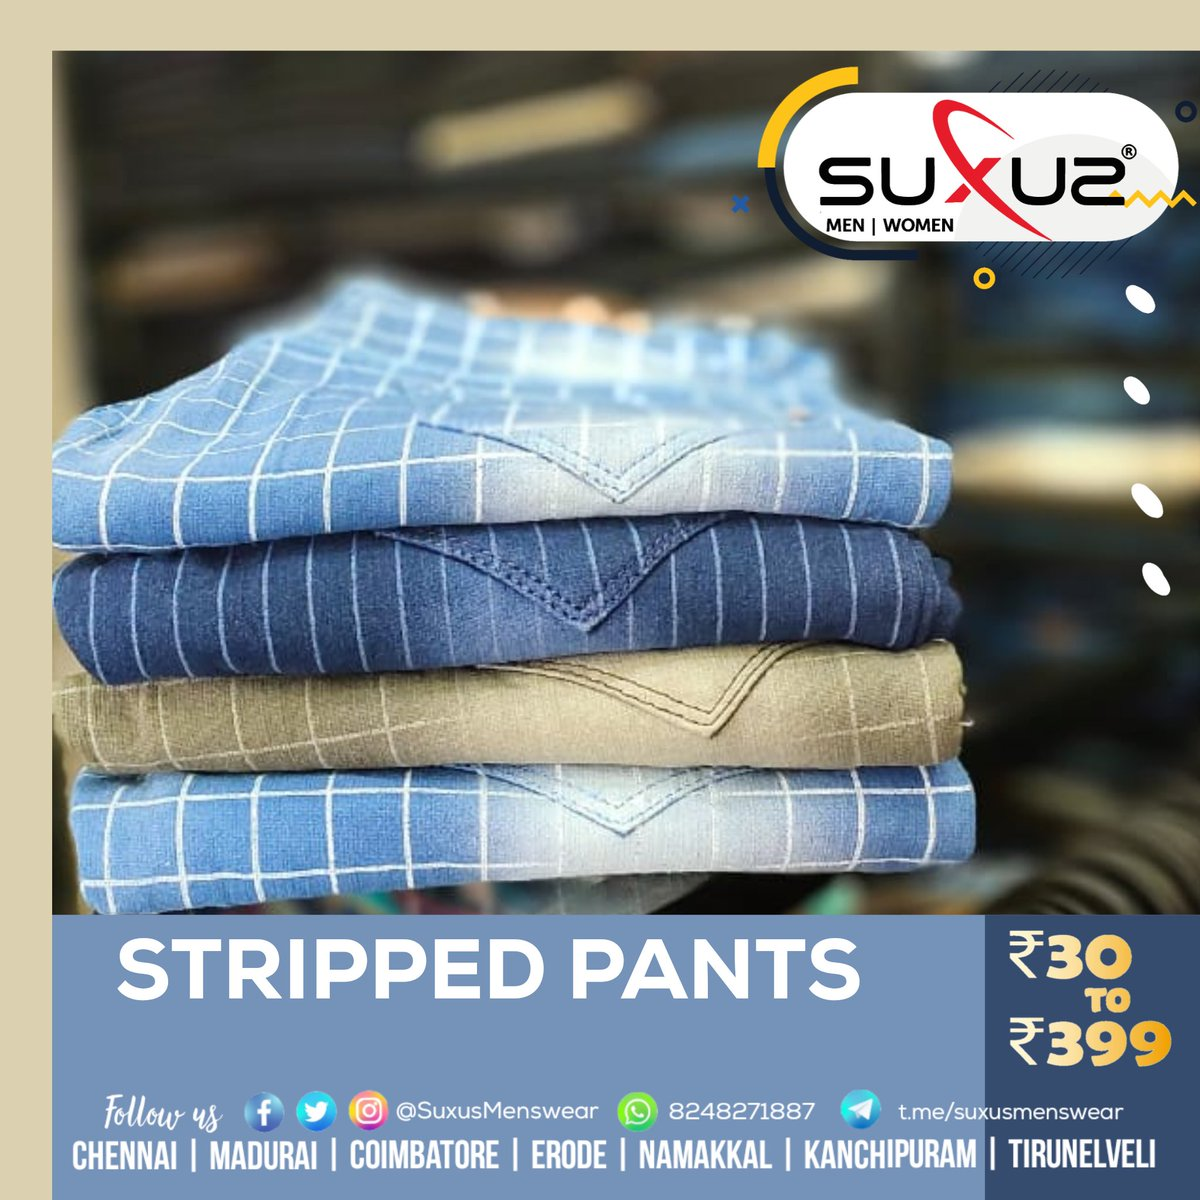 Fully Loaded With trending Stocks! All men and women collections from ₹30 to ₹399 only at SUXUS  #suxus #menswear #rs30to399  #lowprice #pants #Casuals #formal #denims #trousers #shirts  #Chennai #Madurai #Coimbatore #Erode #Namakkal #Kanchipuram #Tirunelveli